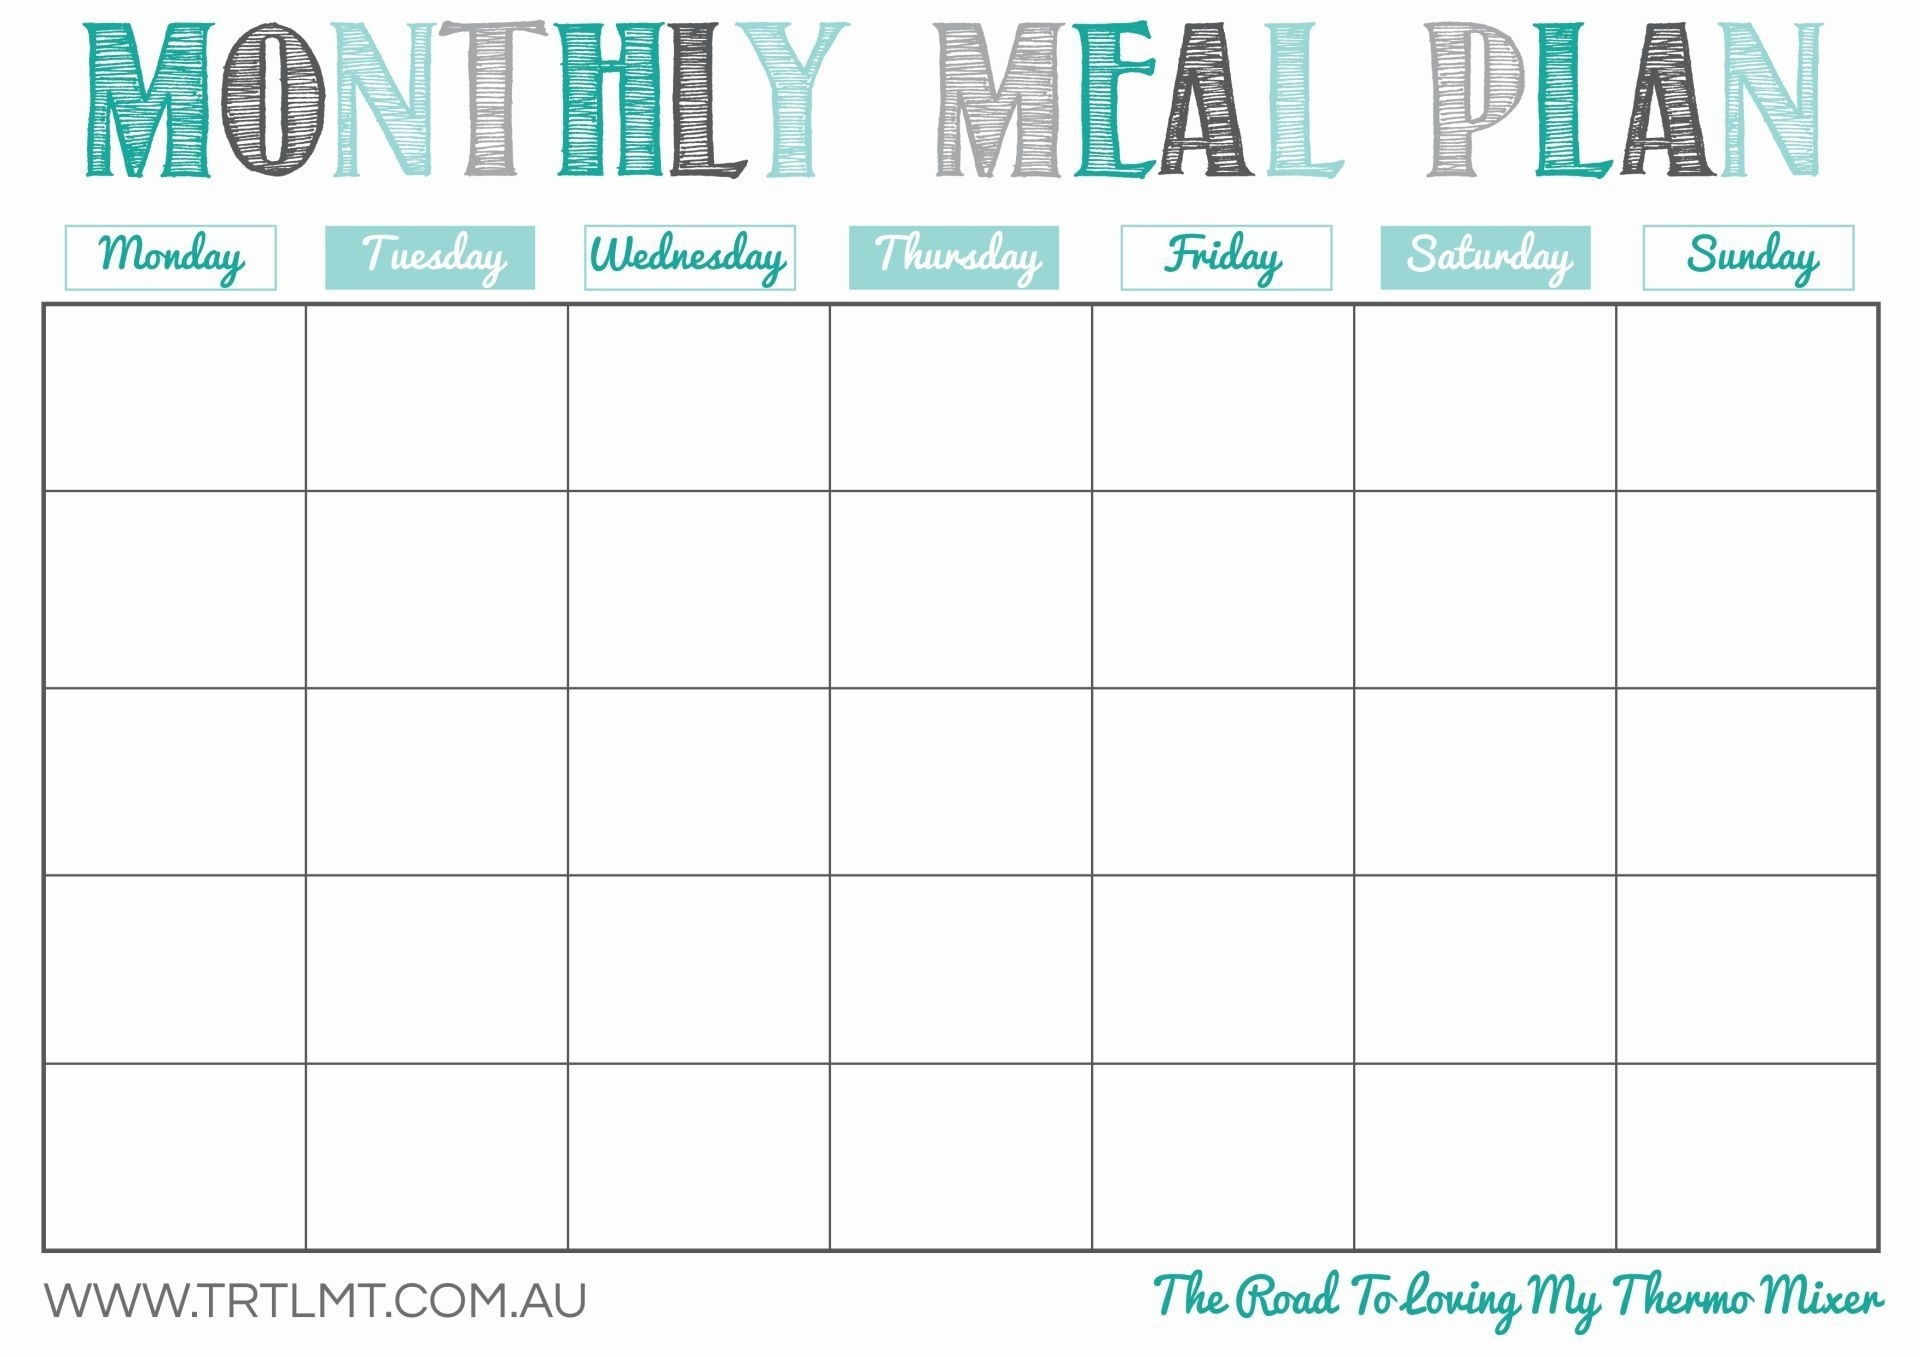 Monthly 5 Week Menu Rotation Template | Template Calendar Printable for 5 Week Lunch Menu Rotation Template